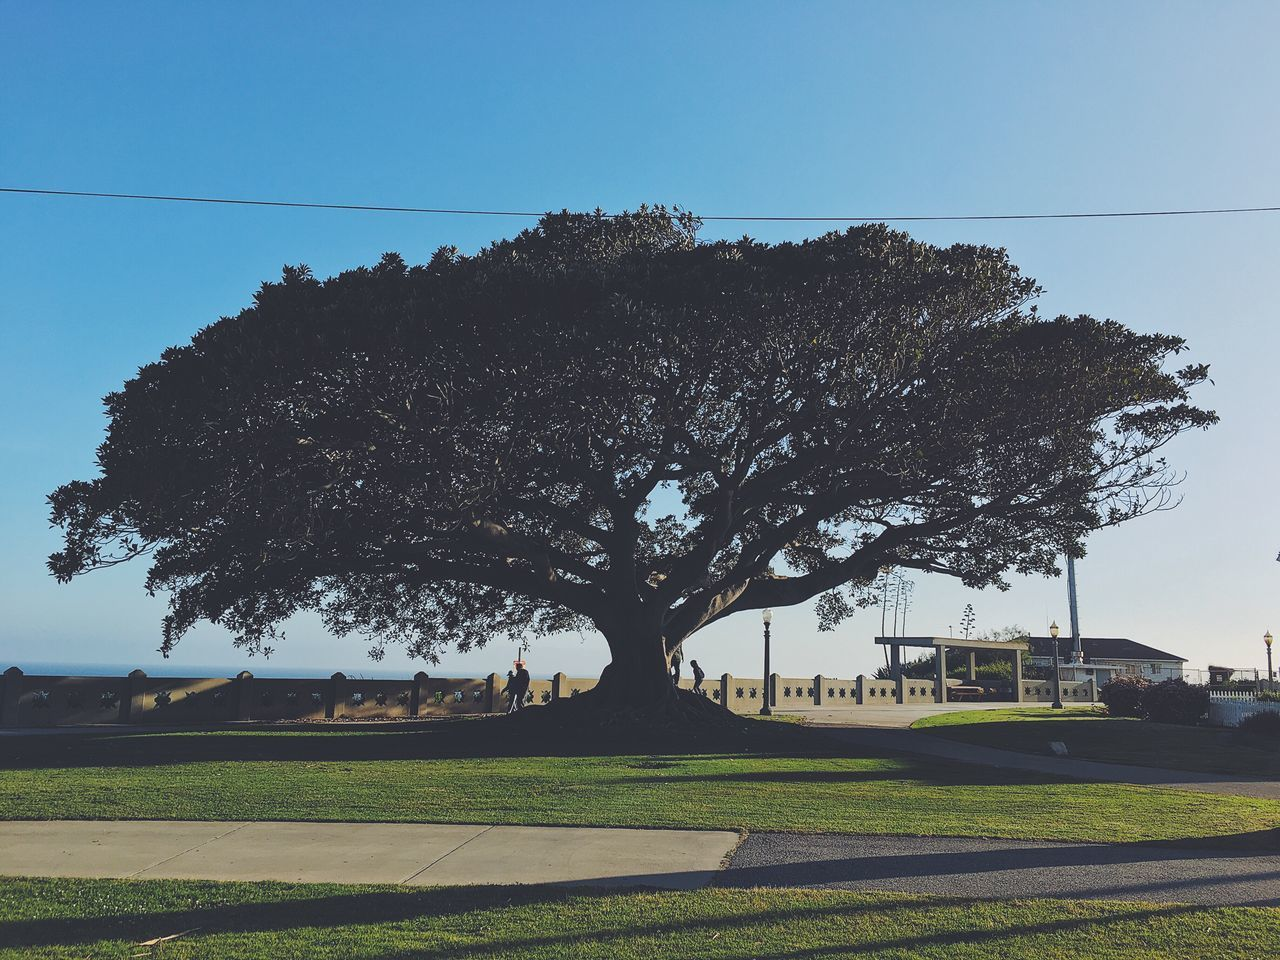 My favorite fig tree Tree Clear Sky Nature Growth Tranquility No People Landscape Outdoors Day Grass Sky First Eyeem Photo Park Outdoor Old Tree Big Tree Fig Tree Sunshine Walking Path Path Open California Earth Blue Green